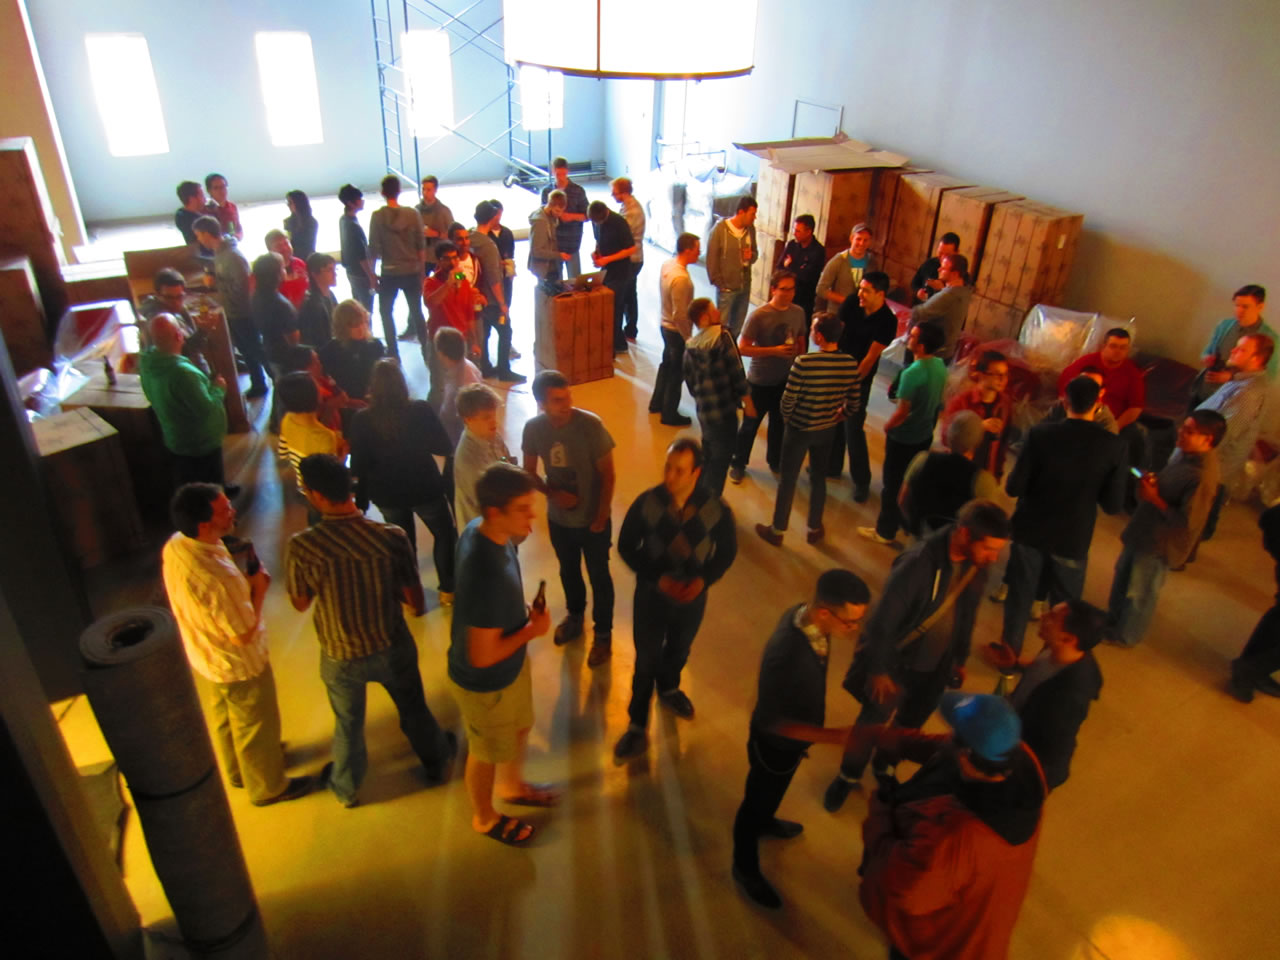 Shopify Lounge, as seen from above